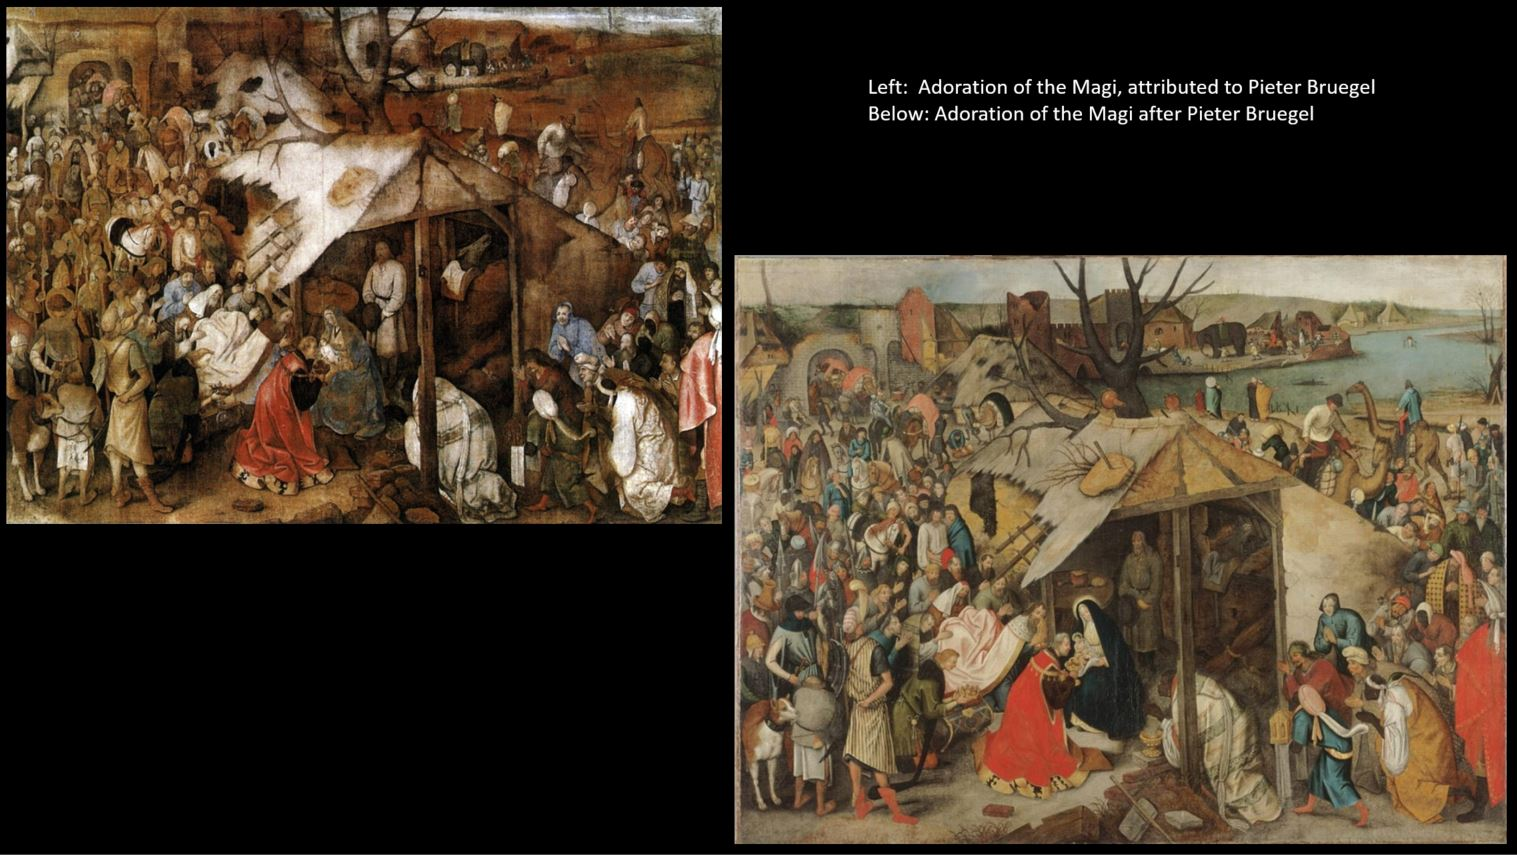 Two very similar paintings by or after Pieter Bruegel, showing the Adoration of the Magi.